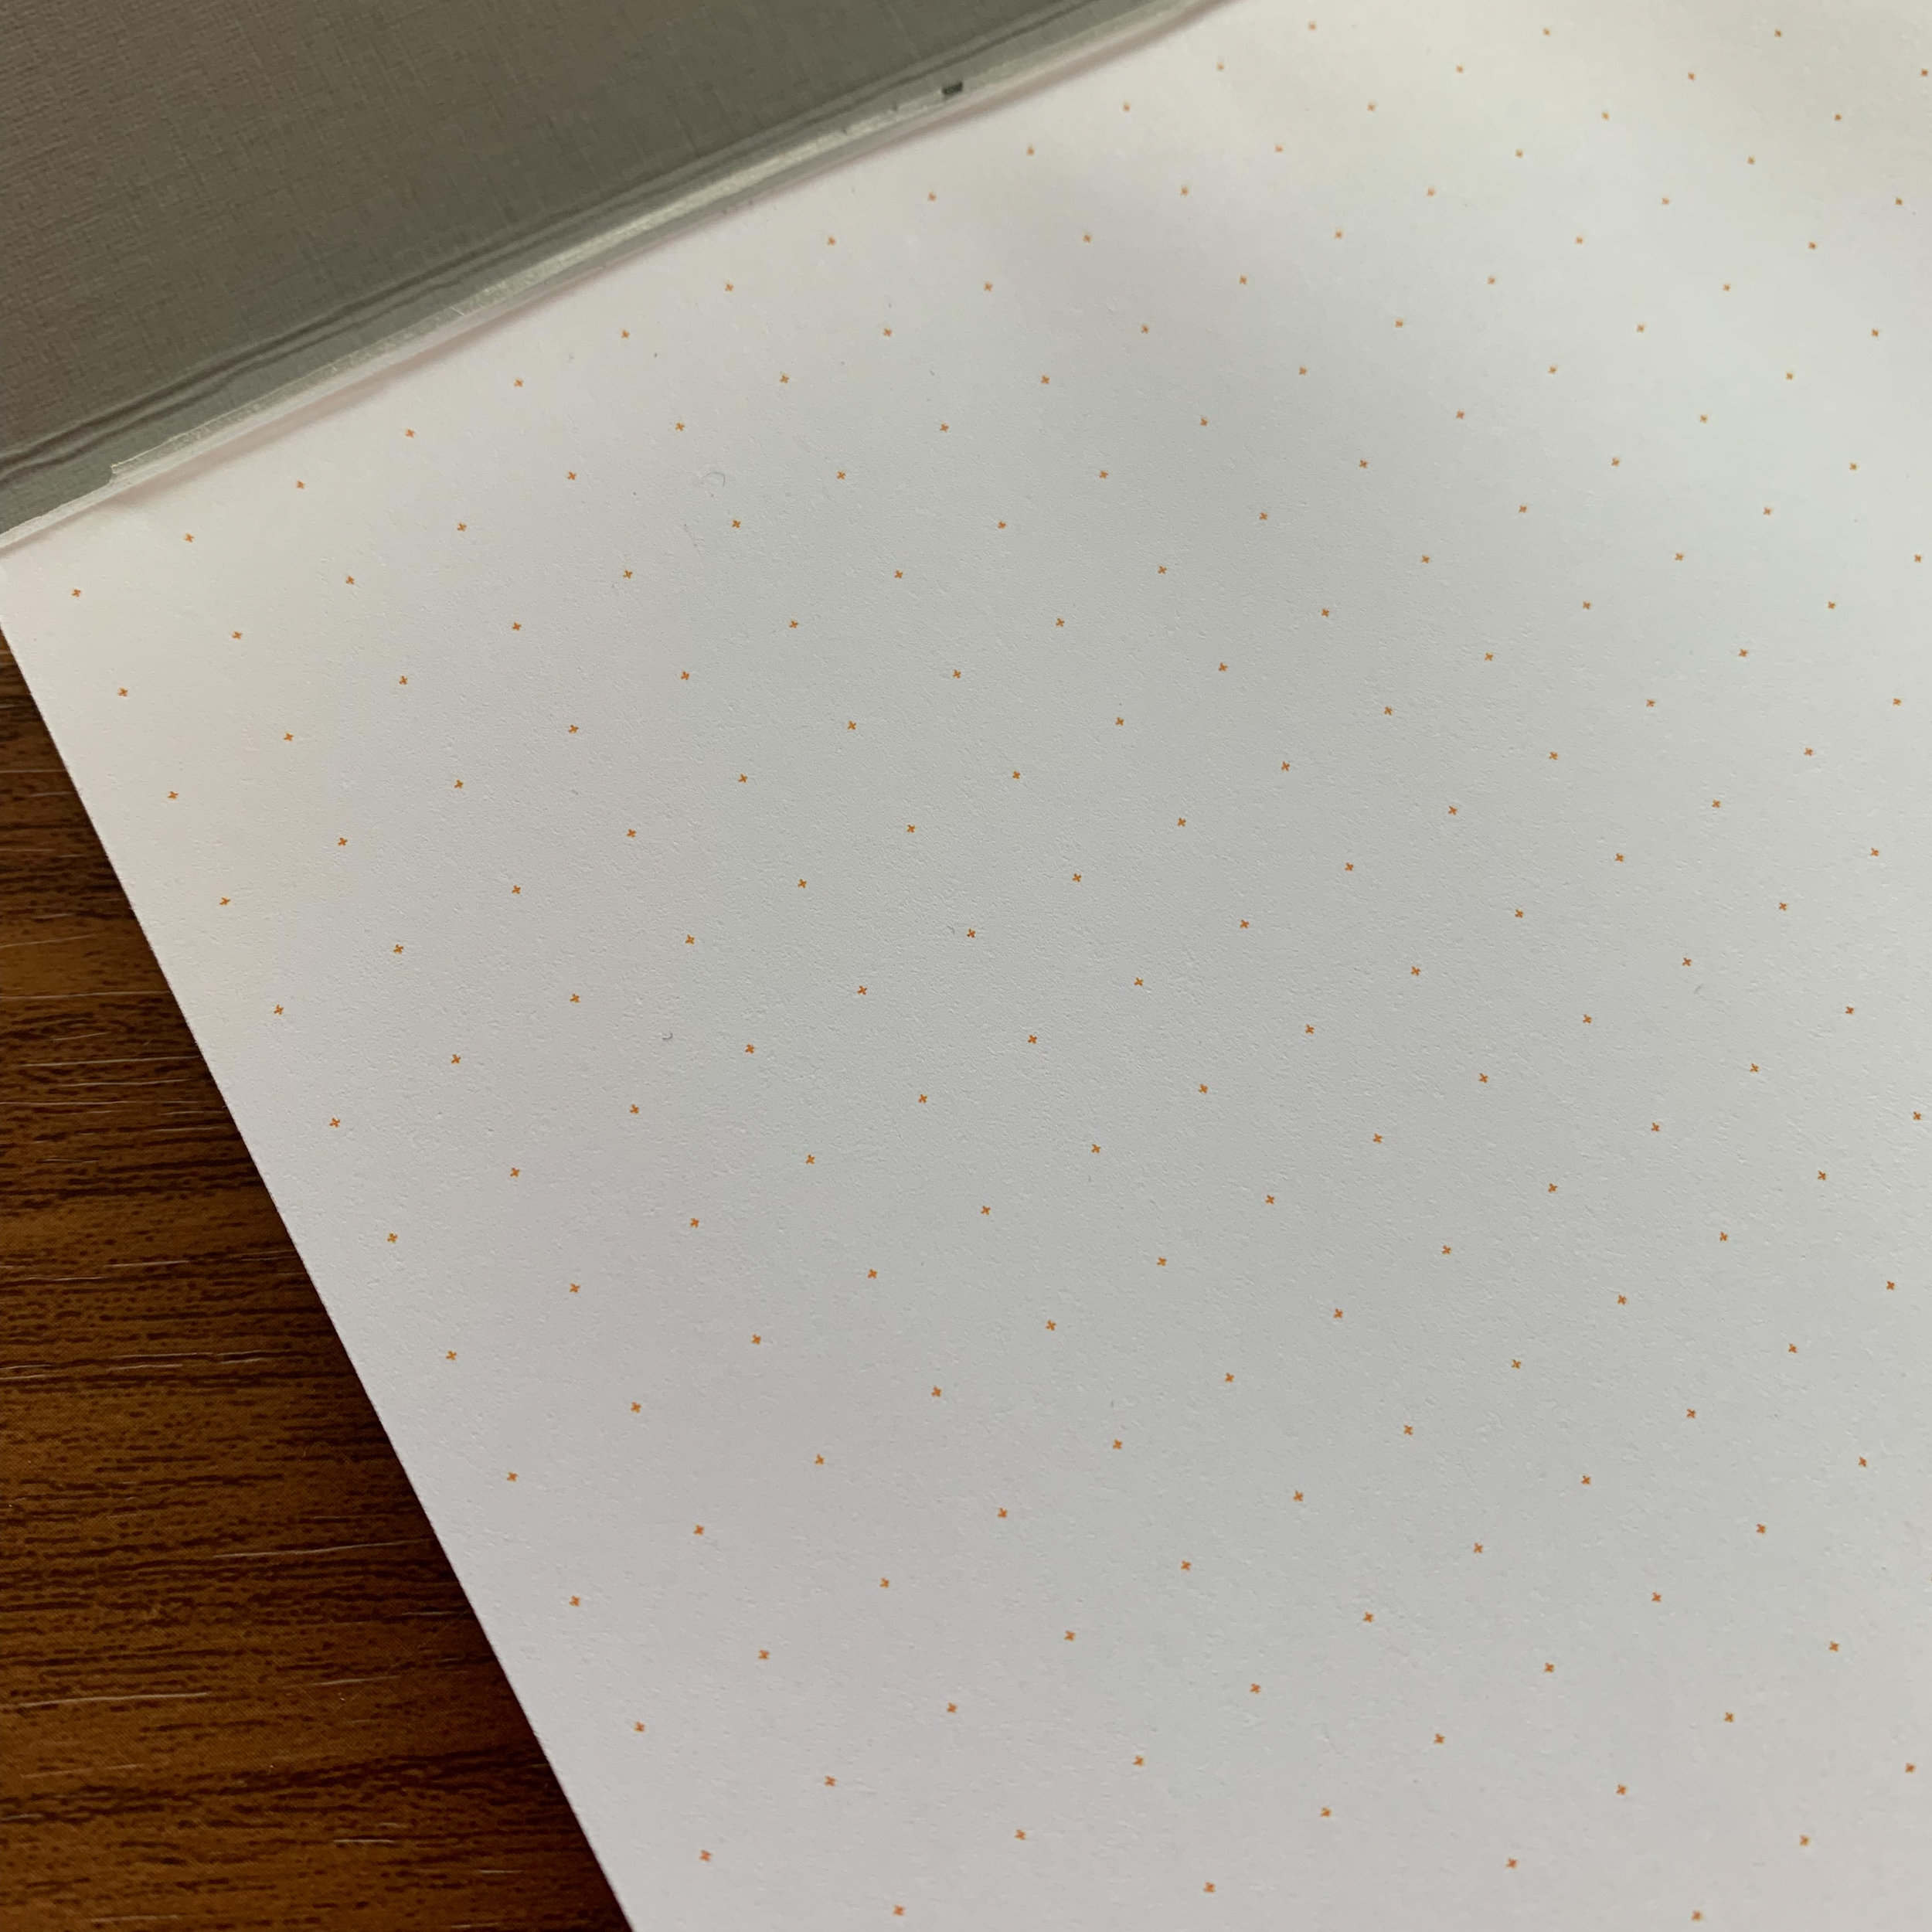 For my first pad, I chose the HP Premium 32lb paper with orange dot grid.